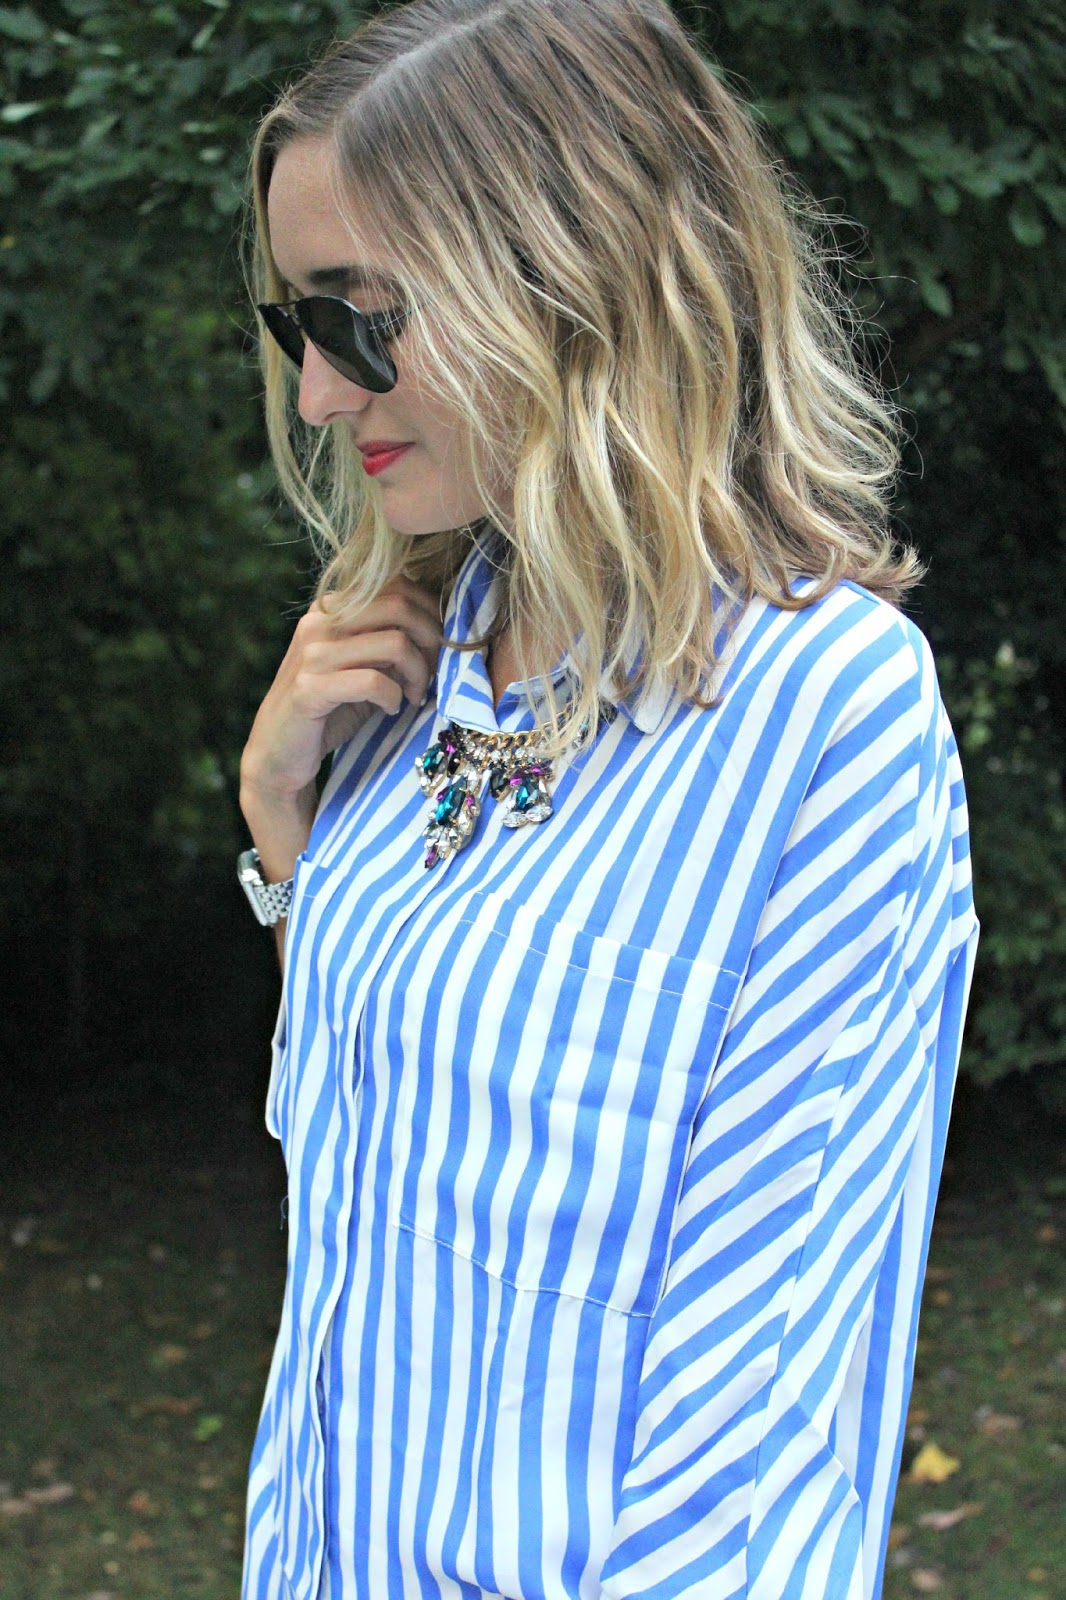 shein striped top